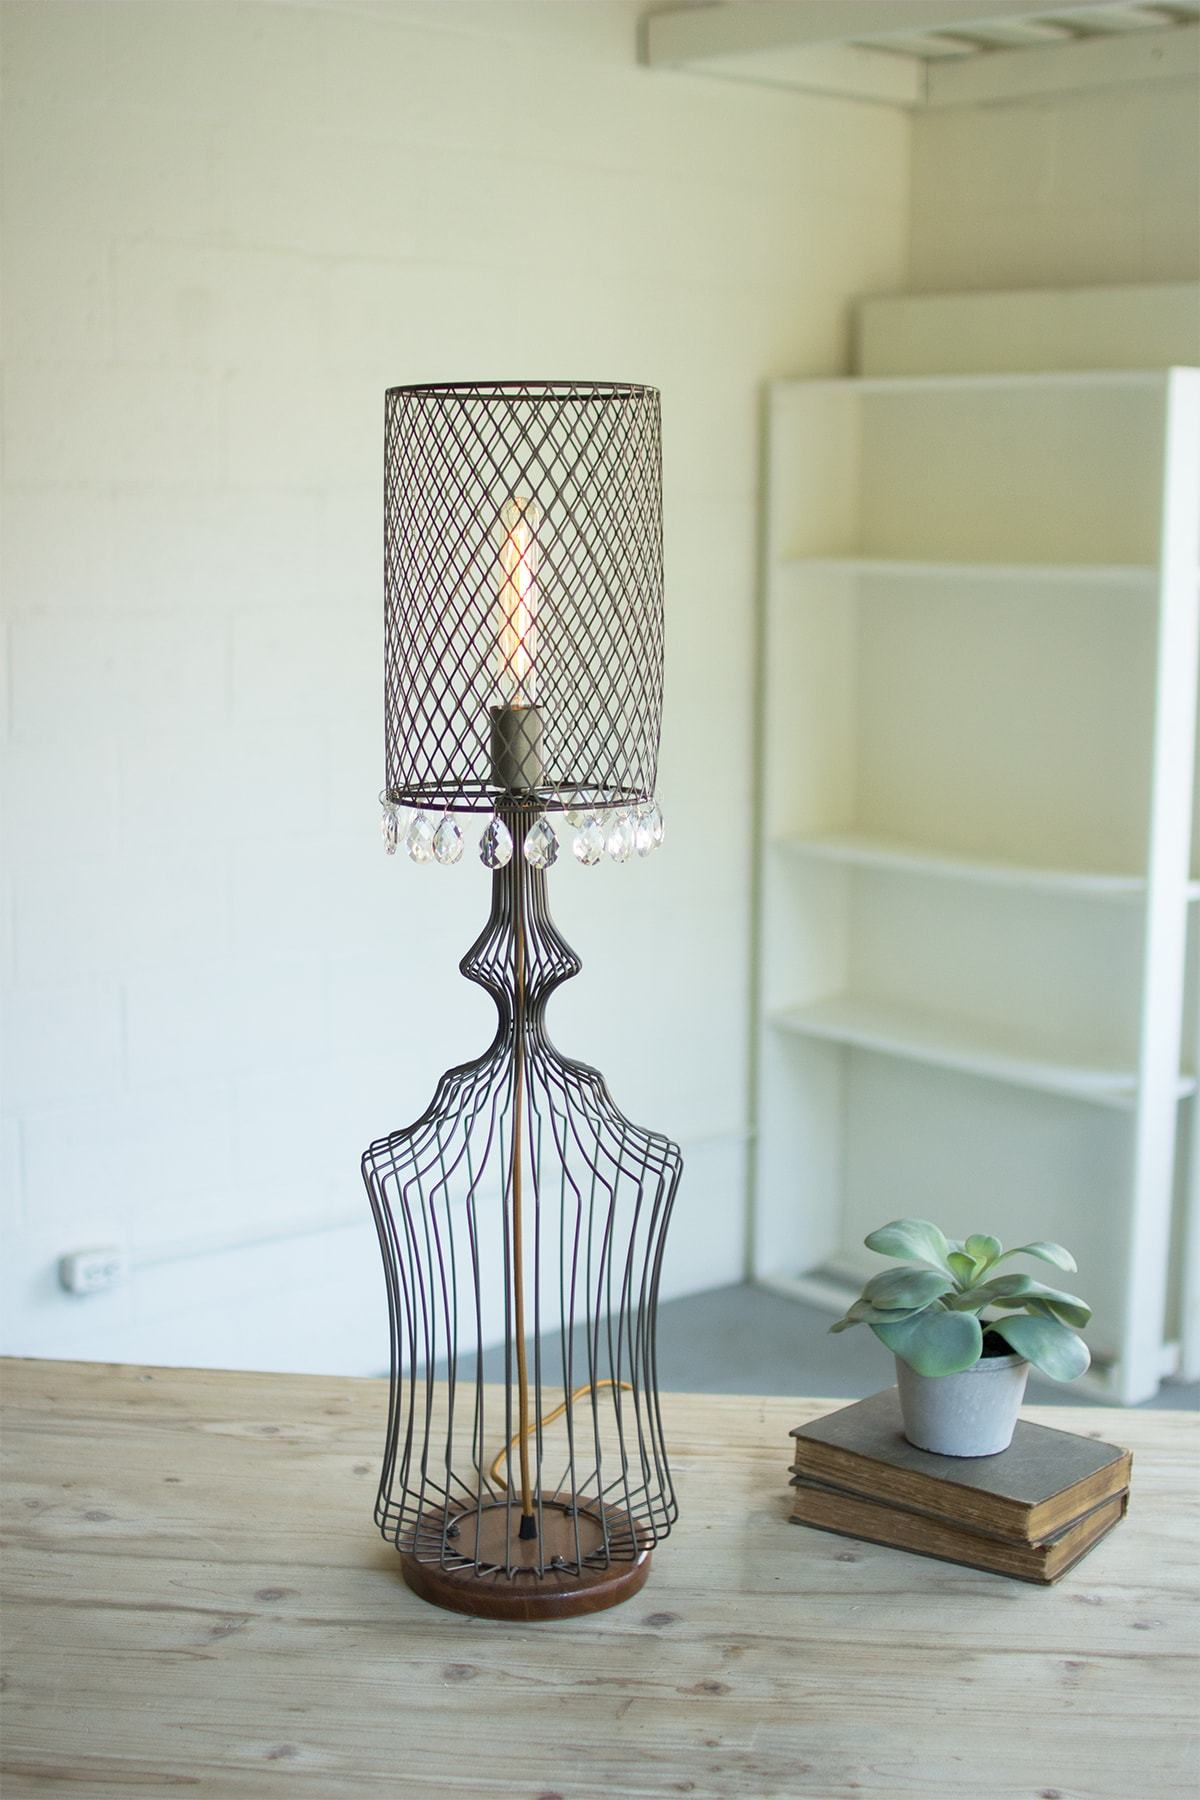 Kalalou Wire Table Lamp W/Metal Mesh Shade & Hanging Gems